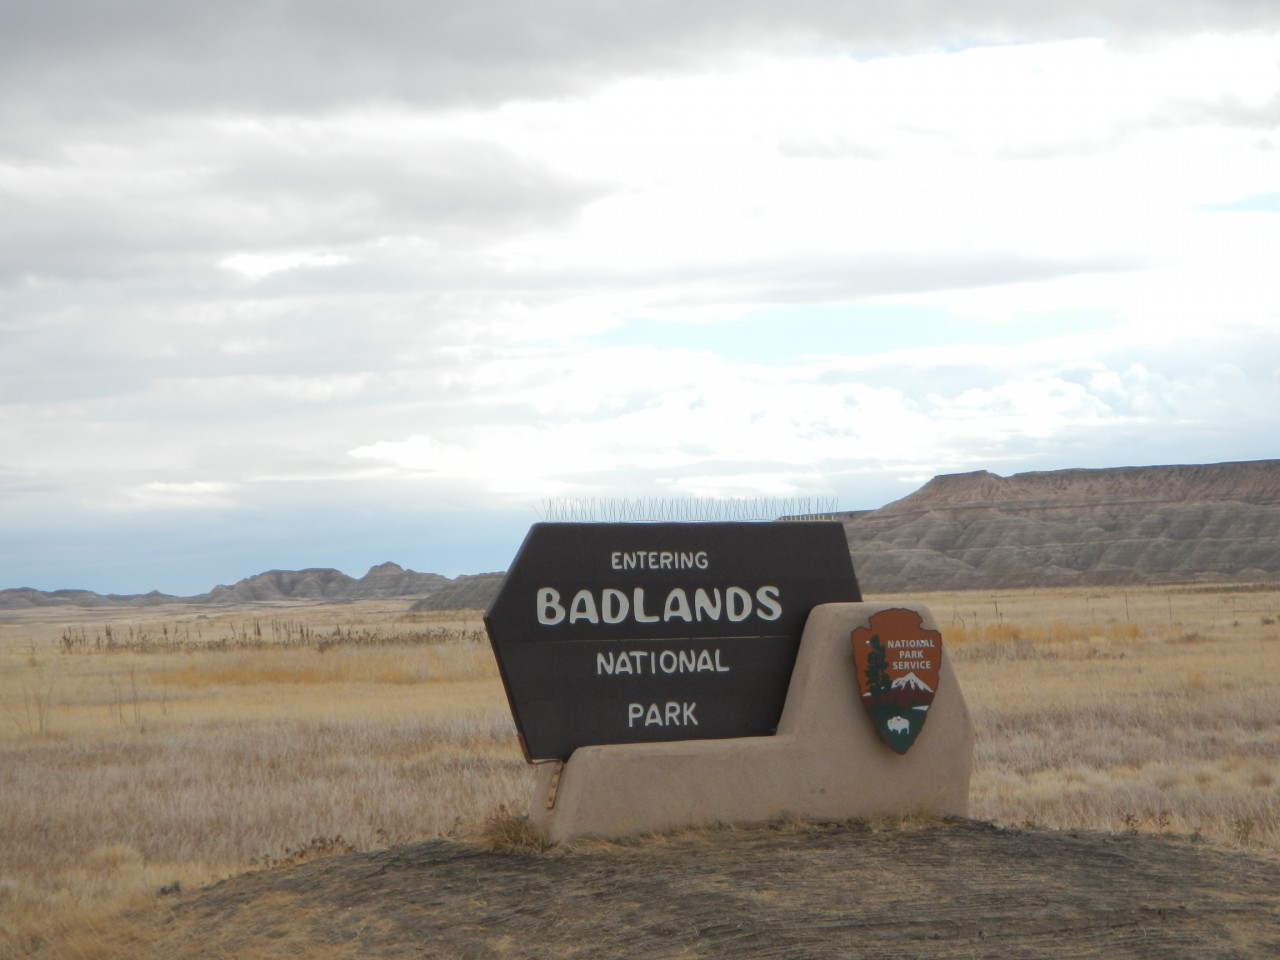 Badlands National Park Entrance Sign